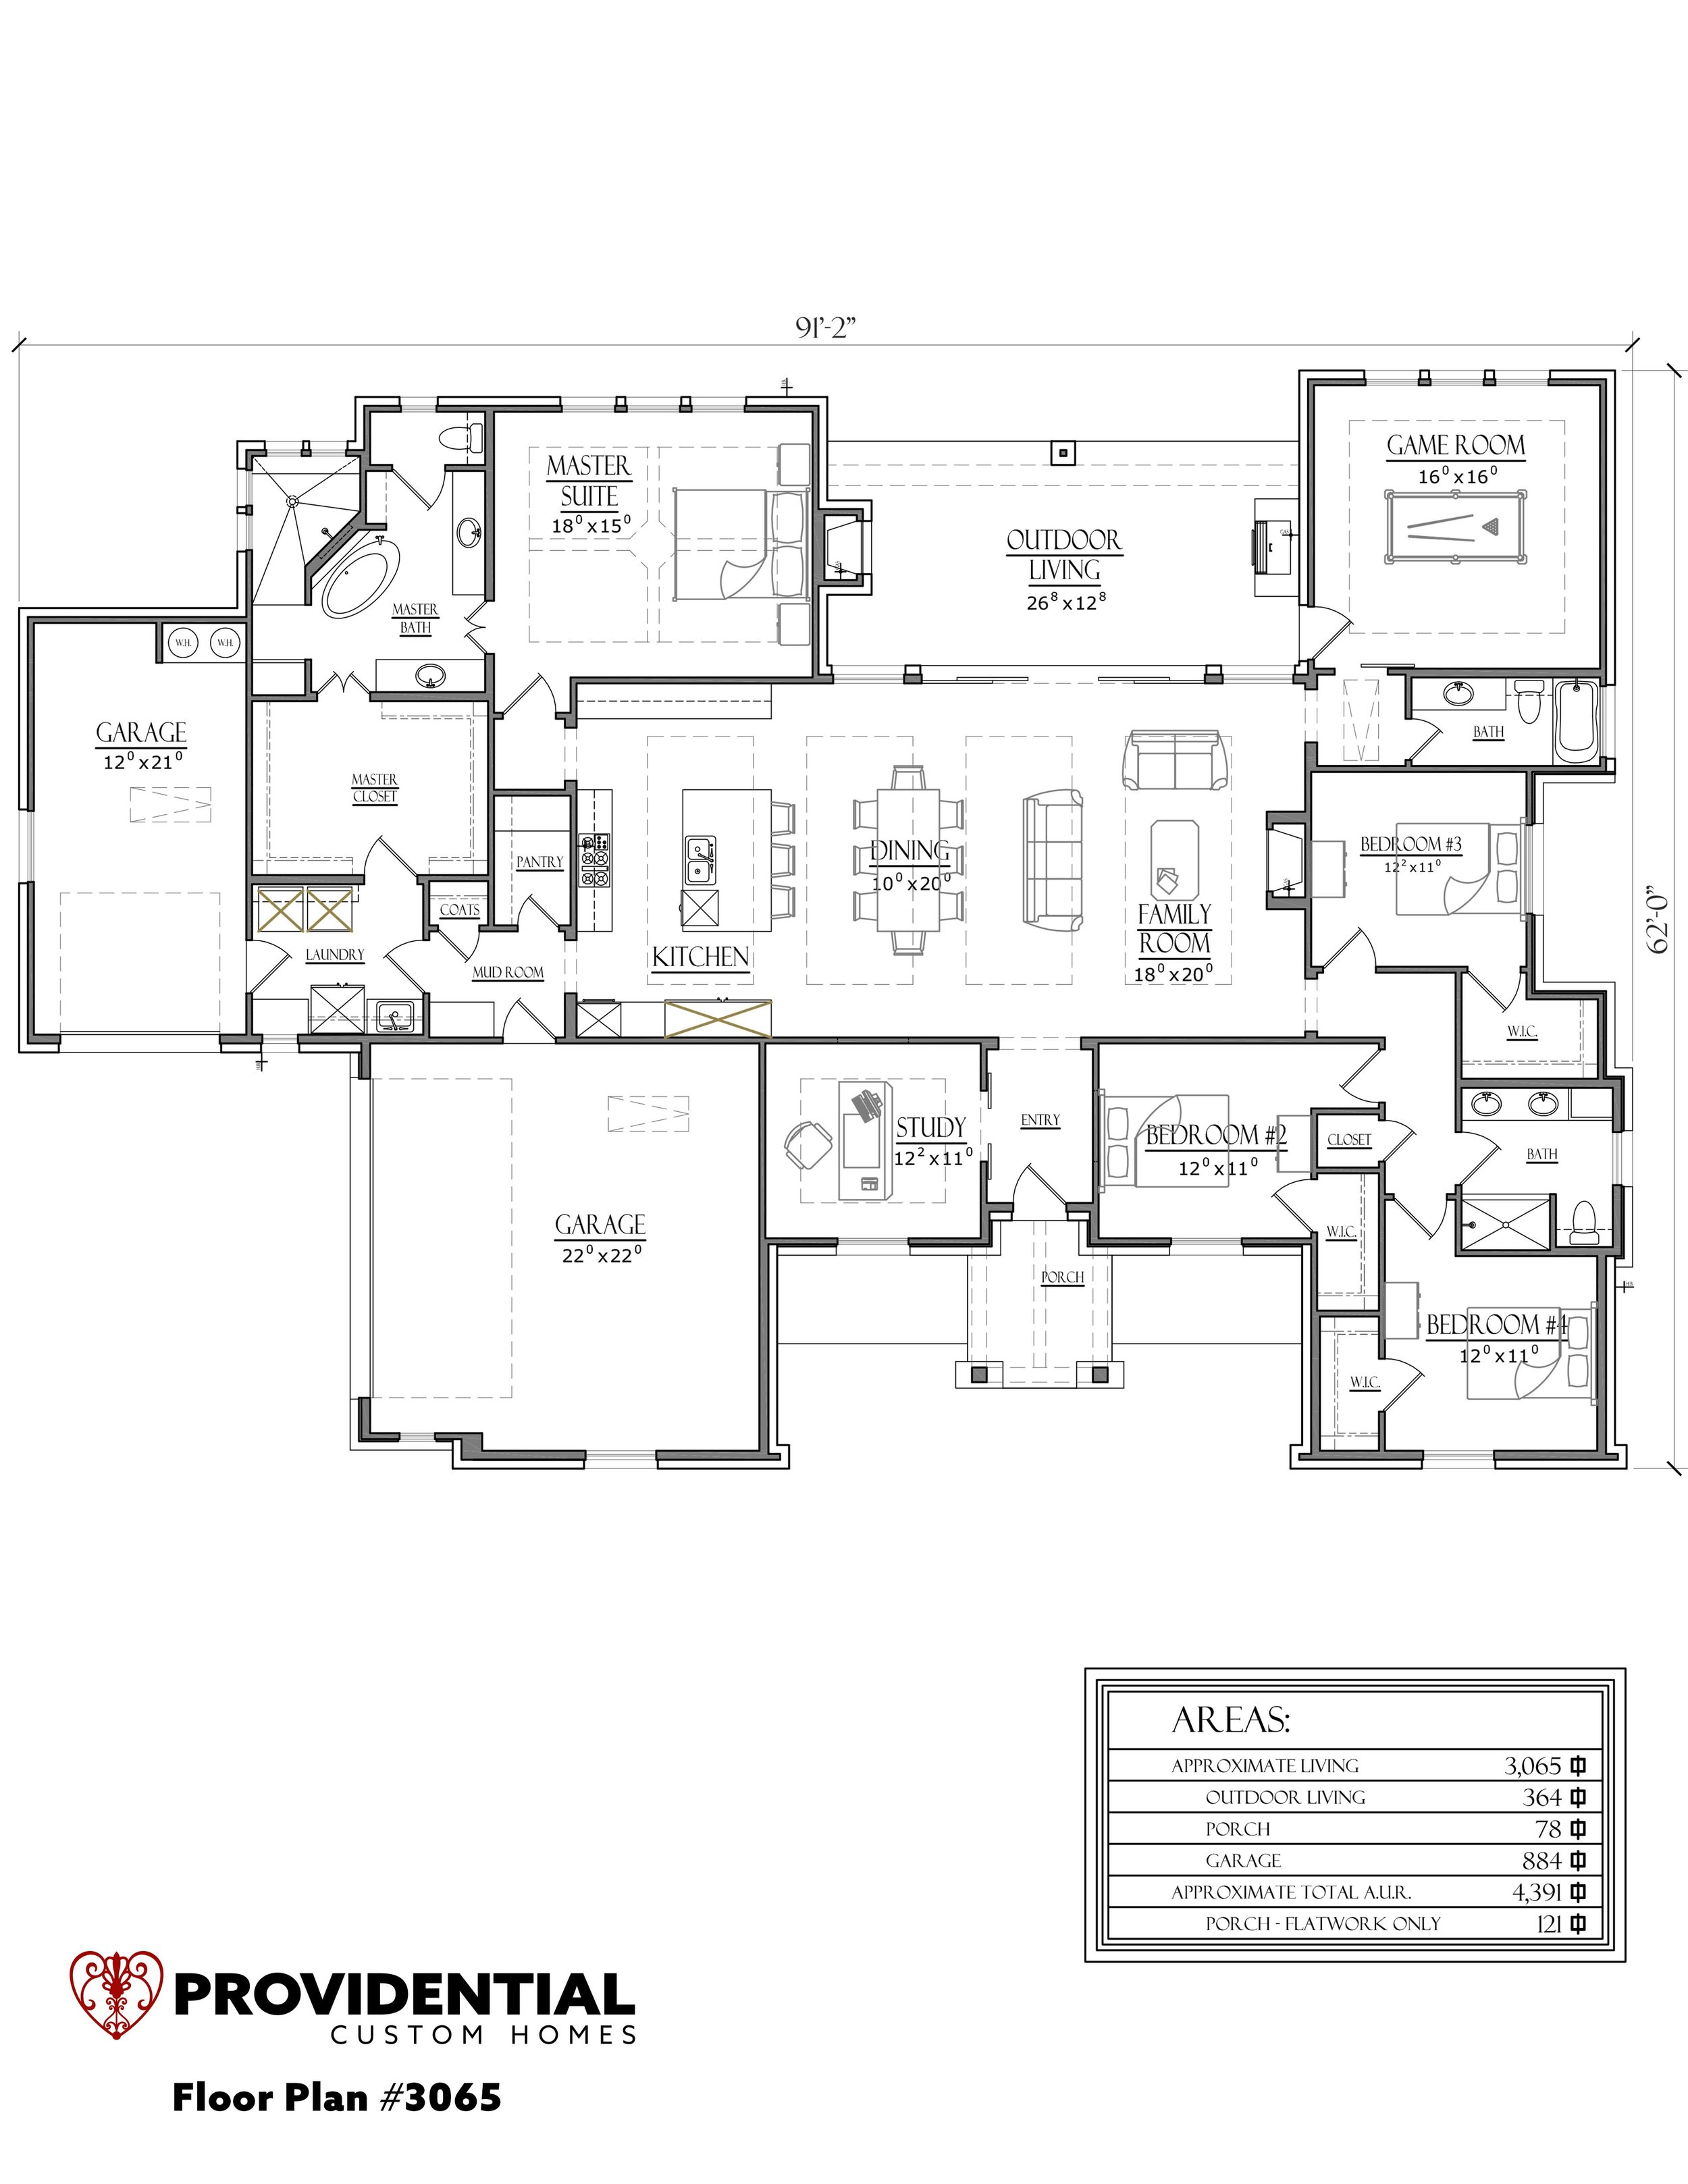 The FLOOR PLAN #3065.jpg